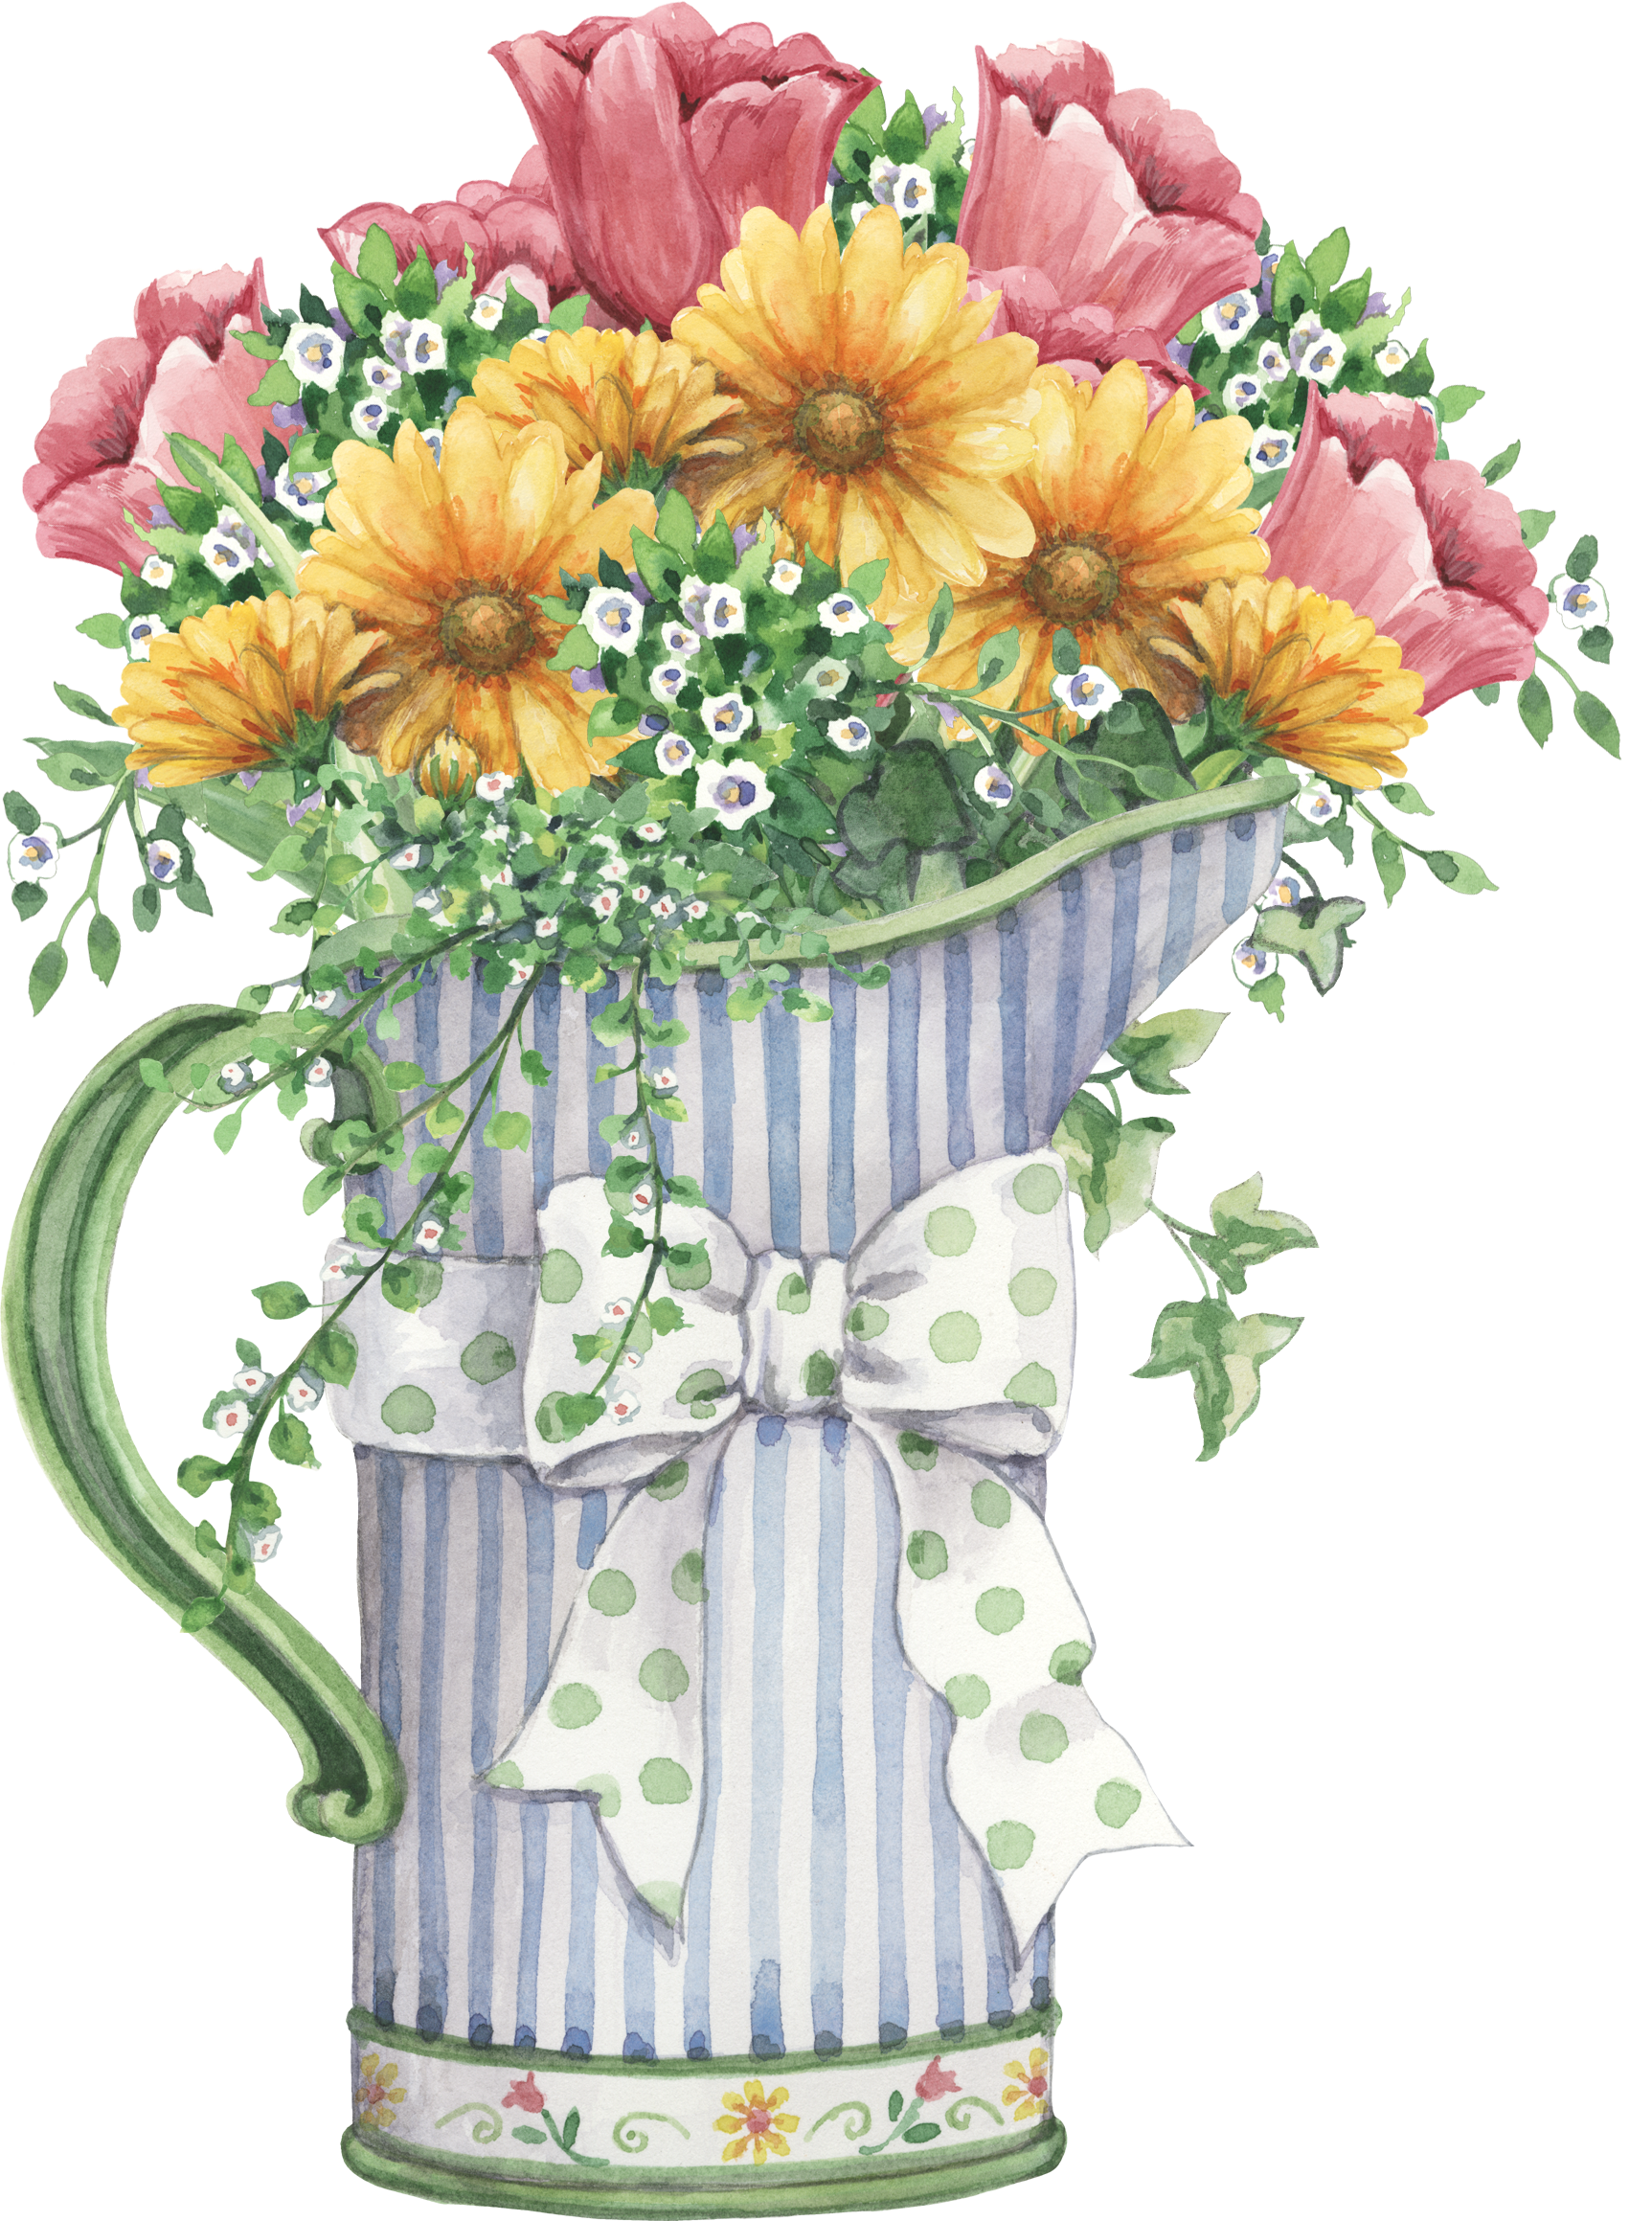 pitcher with flowers art of flowers pinterest flowers decoupage and clip art. Black Bedroom Furniture Sets. Home Design Ideas